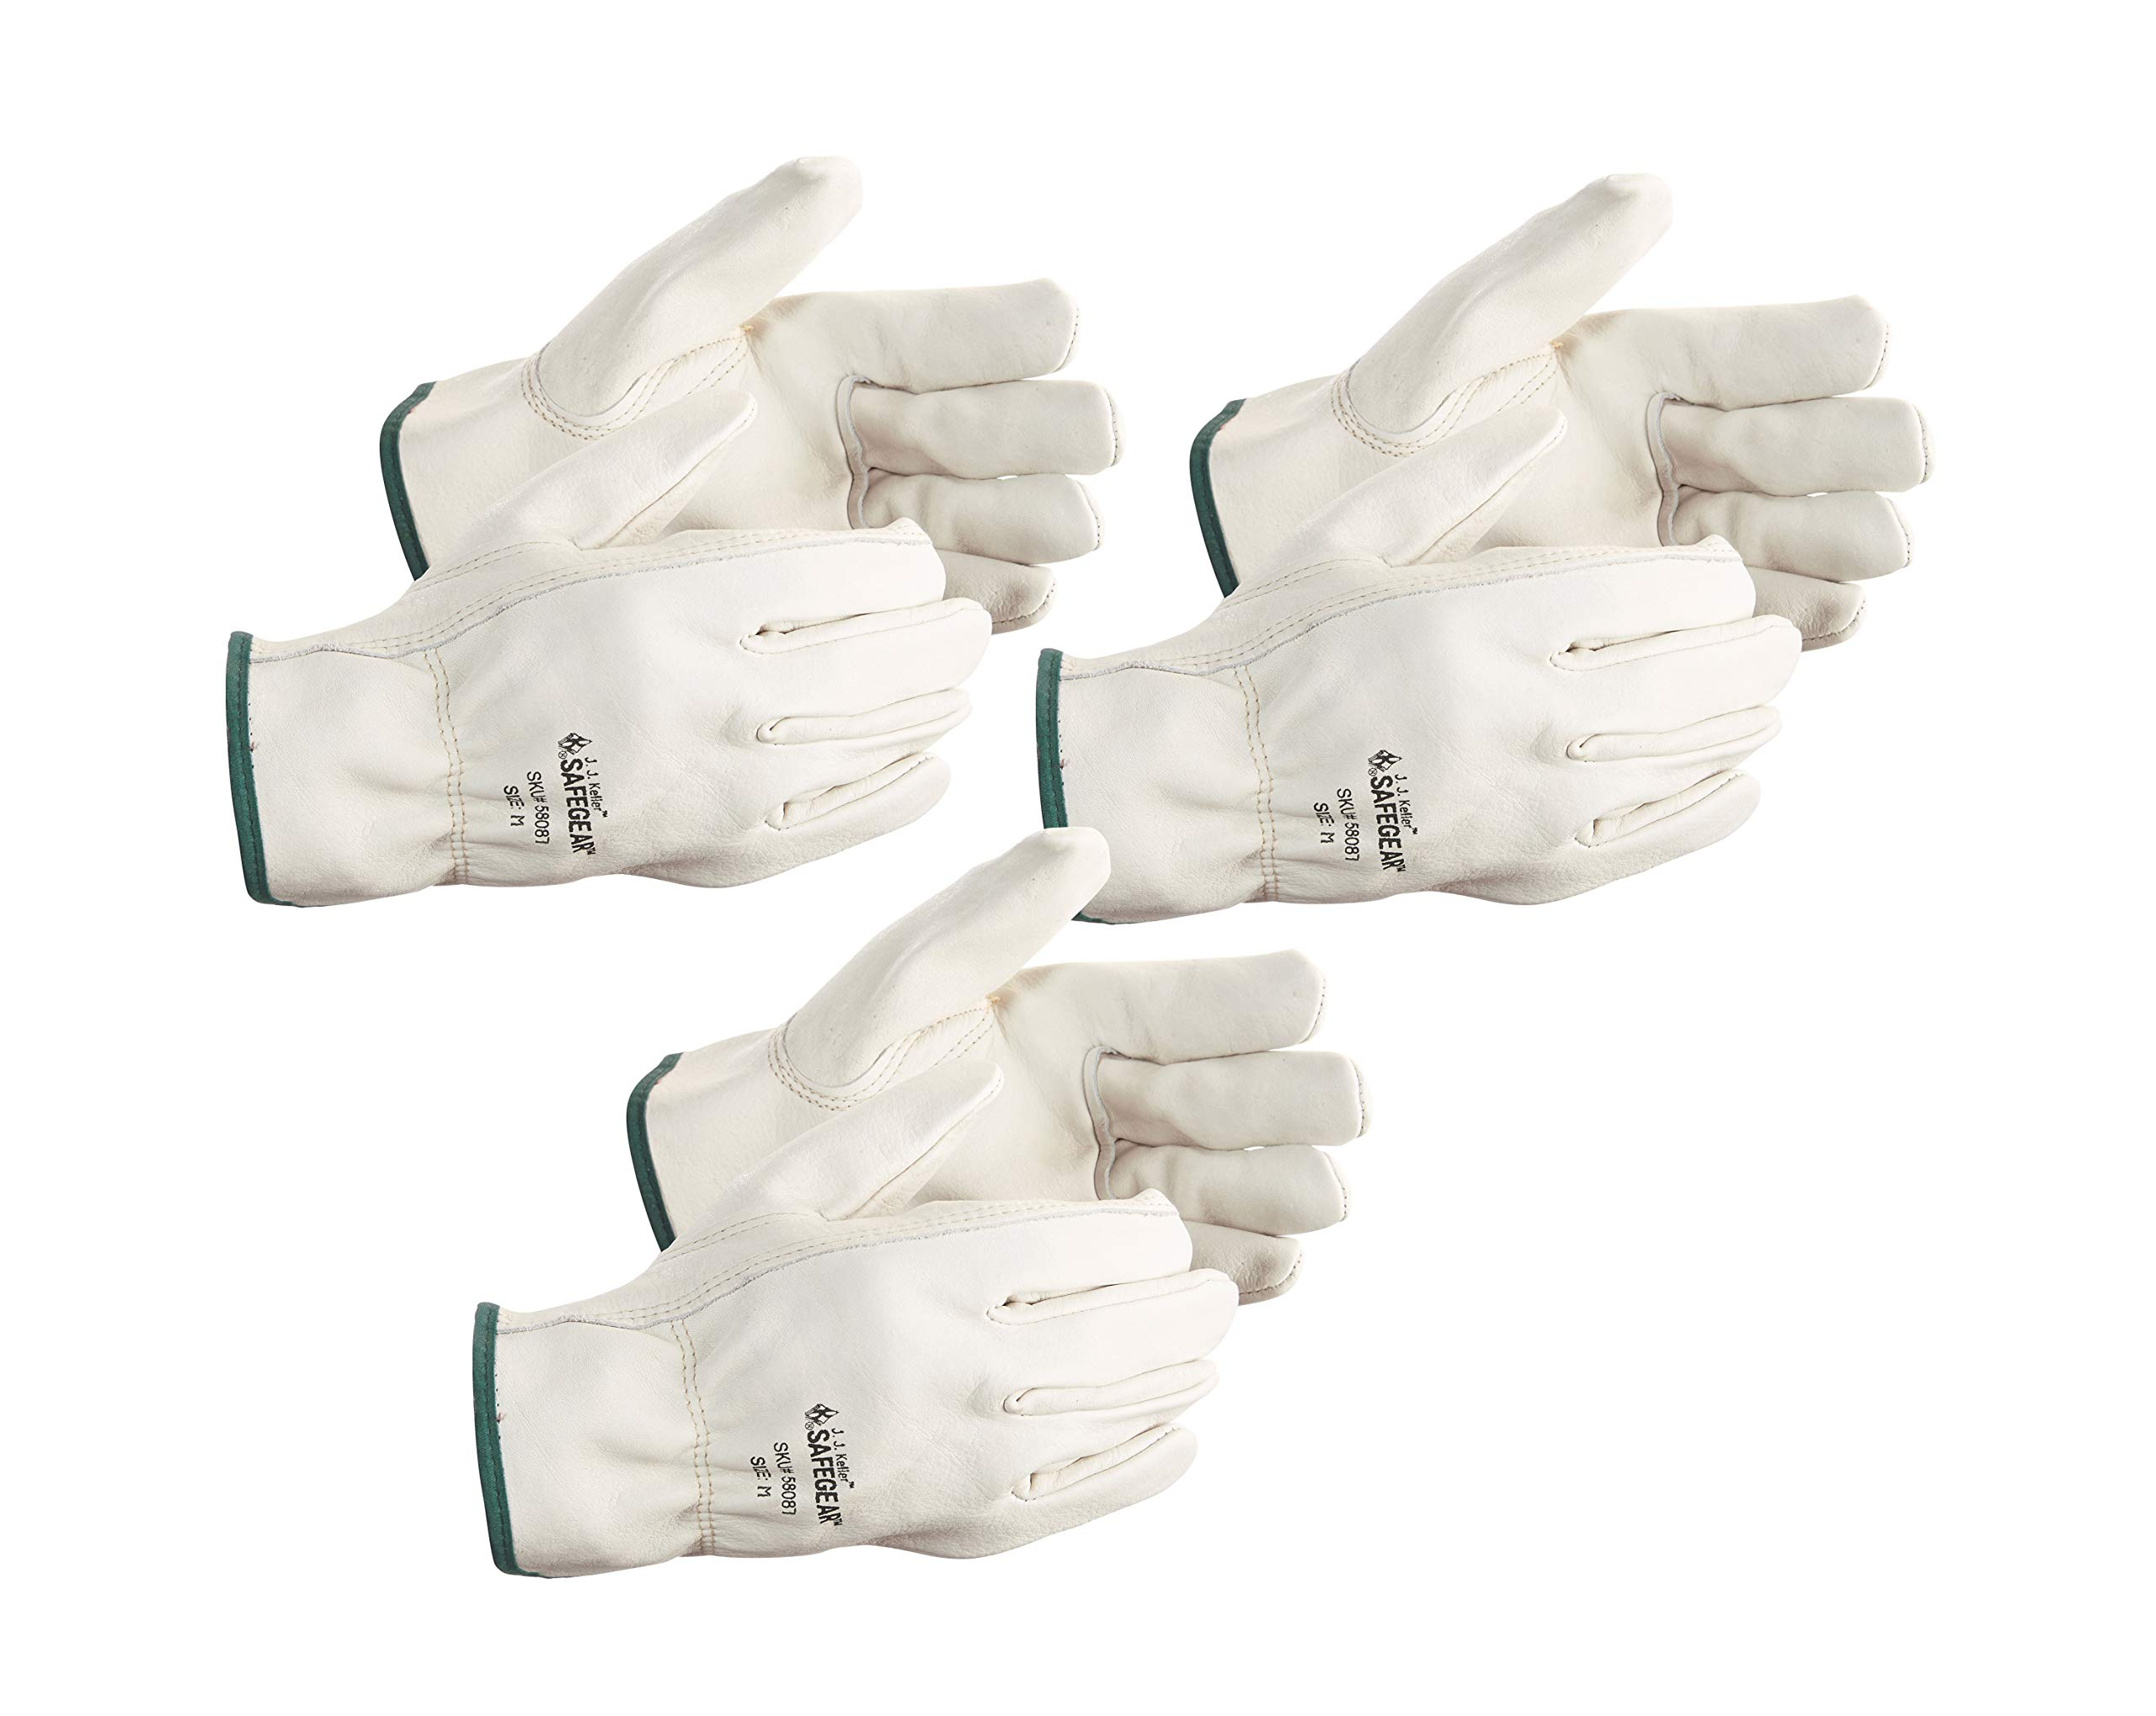 Vgo 3Pairs Unlined Mens Pigskin Leather Work Gloves Drivers Gloves Size XL,Light Cyan,PA9501